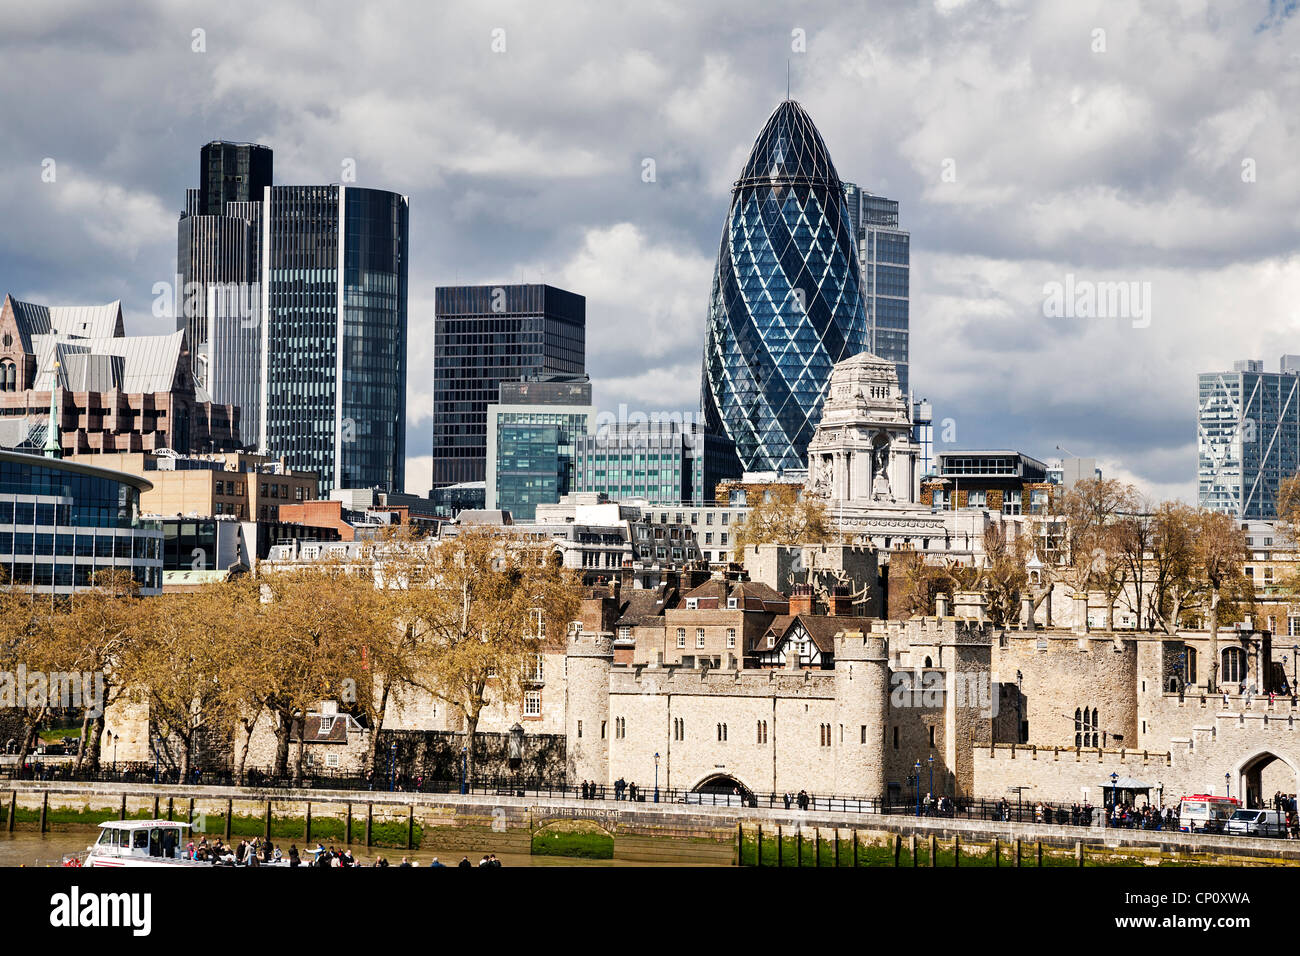 The London skyline including the square mile and the Tower of London, England. - Stock Image